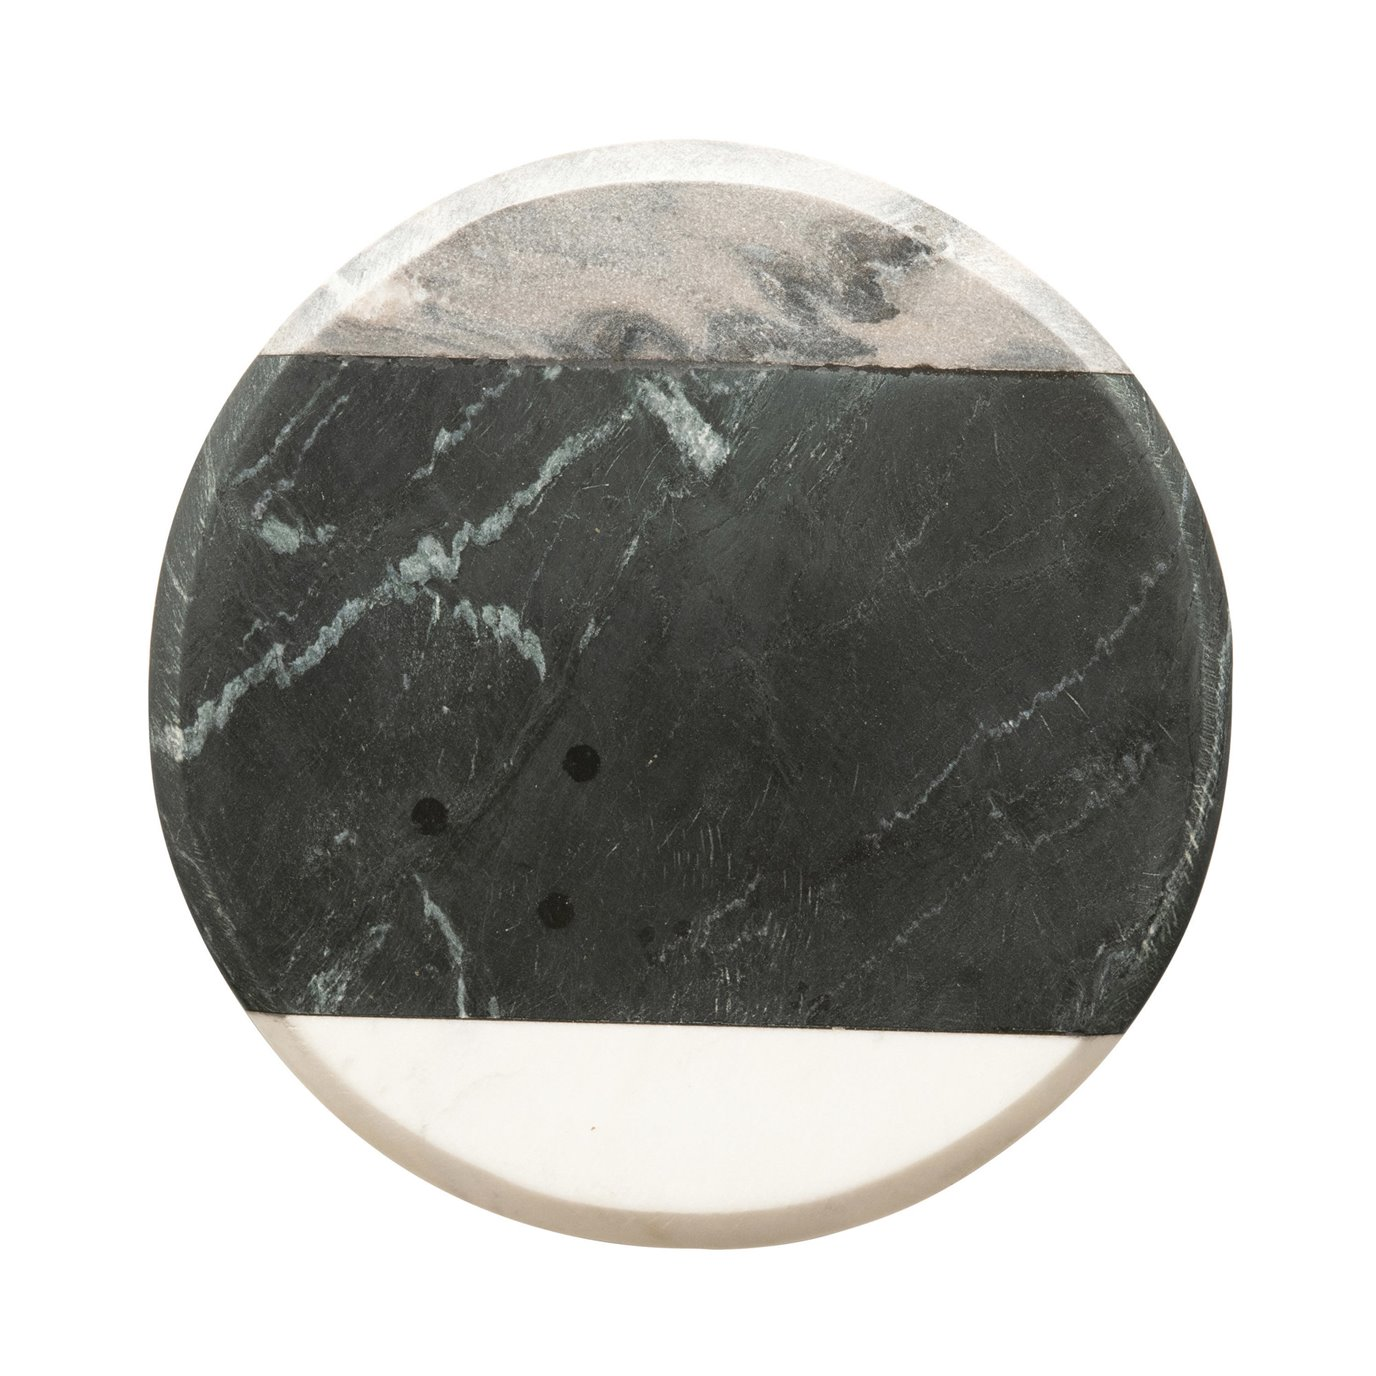 Round Marble Cheese/Cutting Board, Grey, Black & White